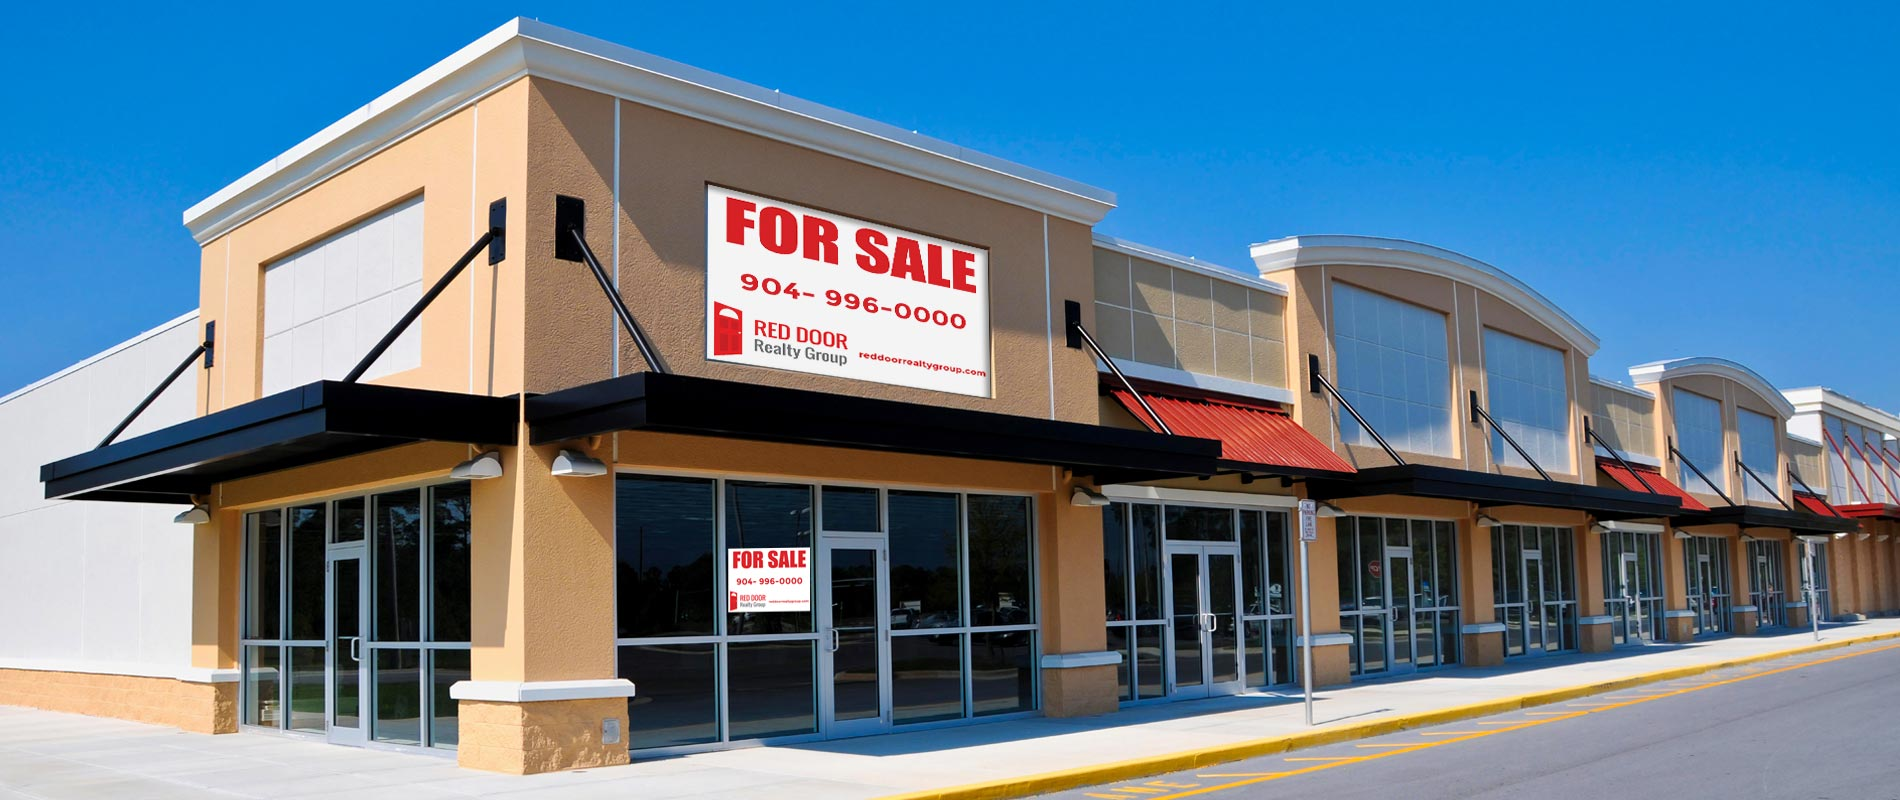 Commercial Building for sale in Jacksonville, FL